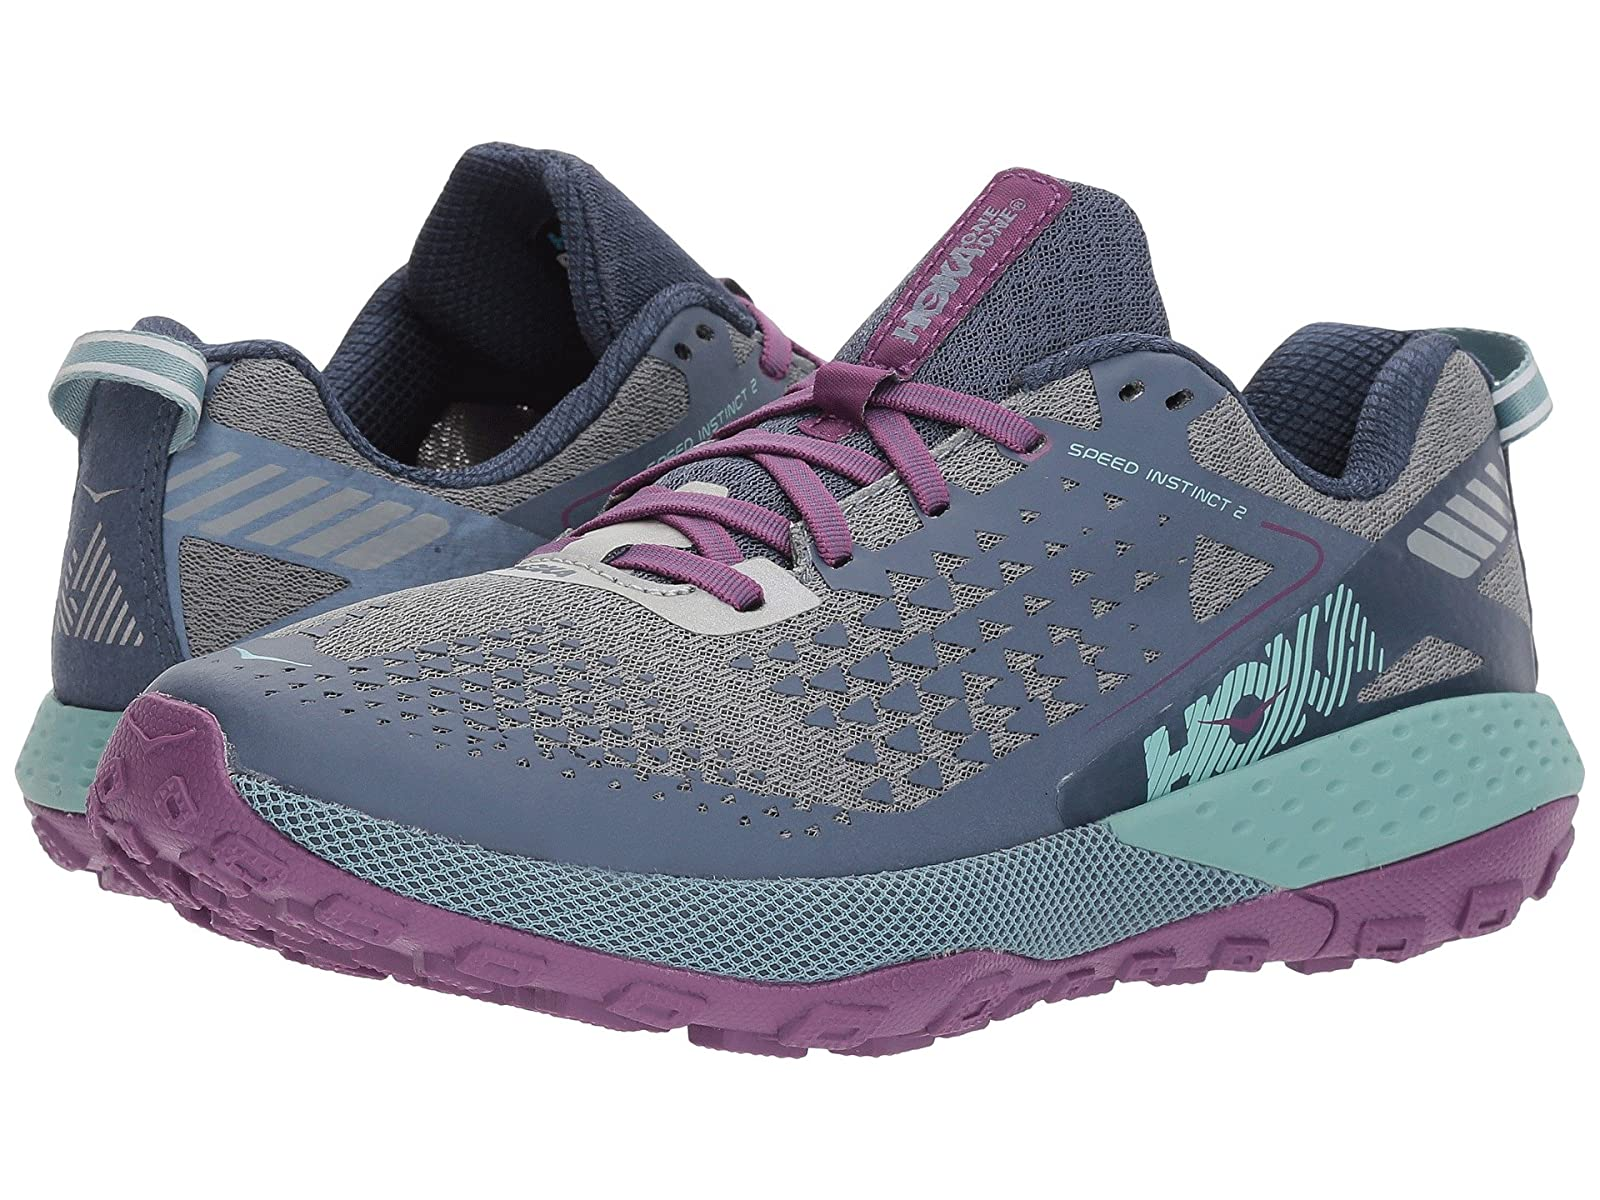 Hoka One One Speed Instinct 2Atmospheric grades have affordable shoes